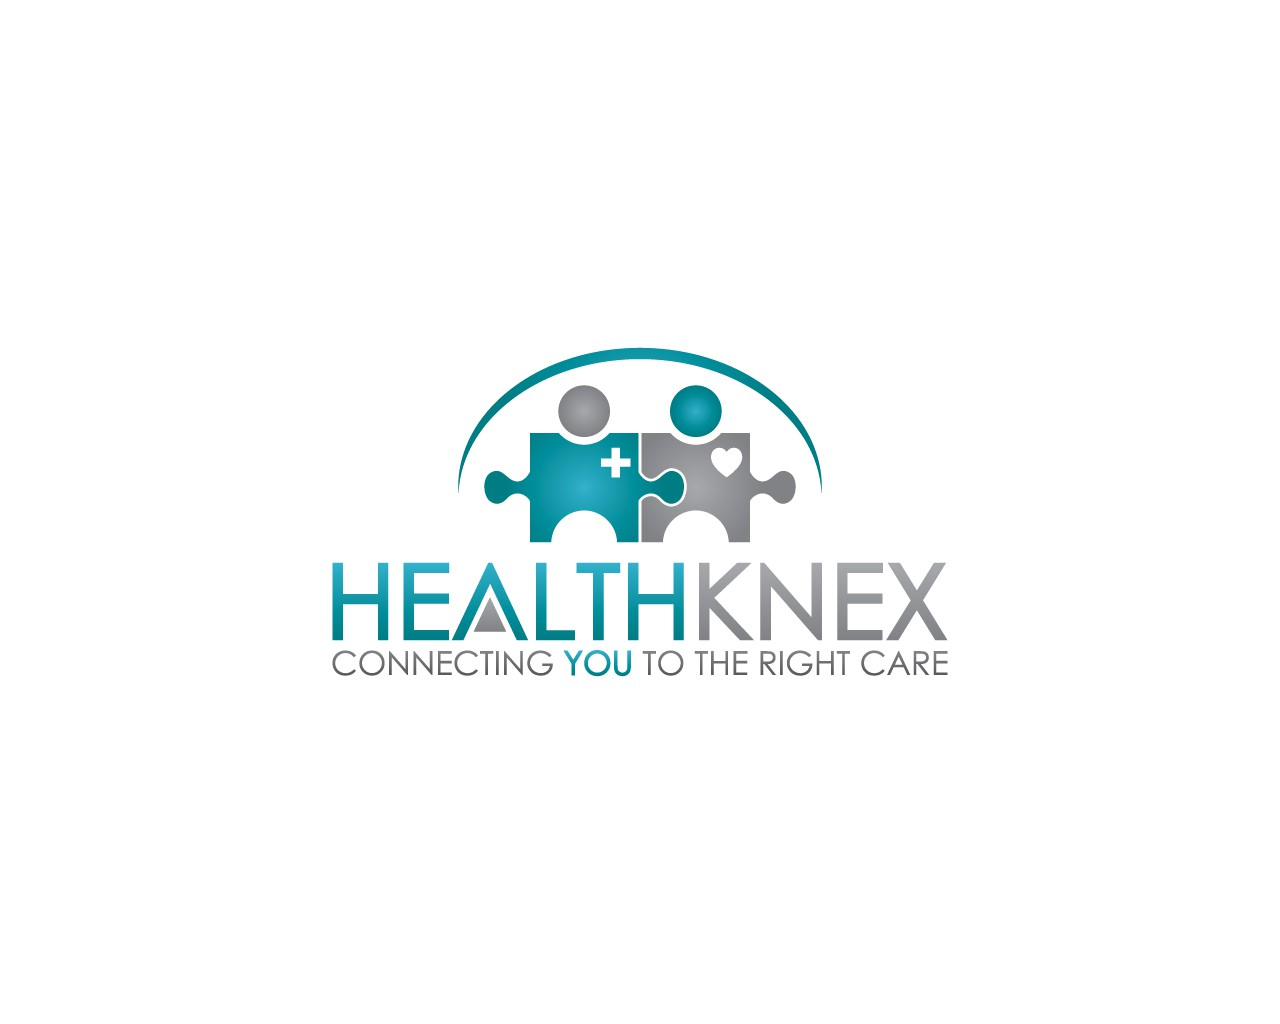 New logo wanted for HealthKnex